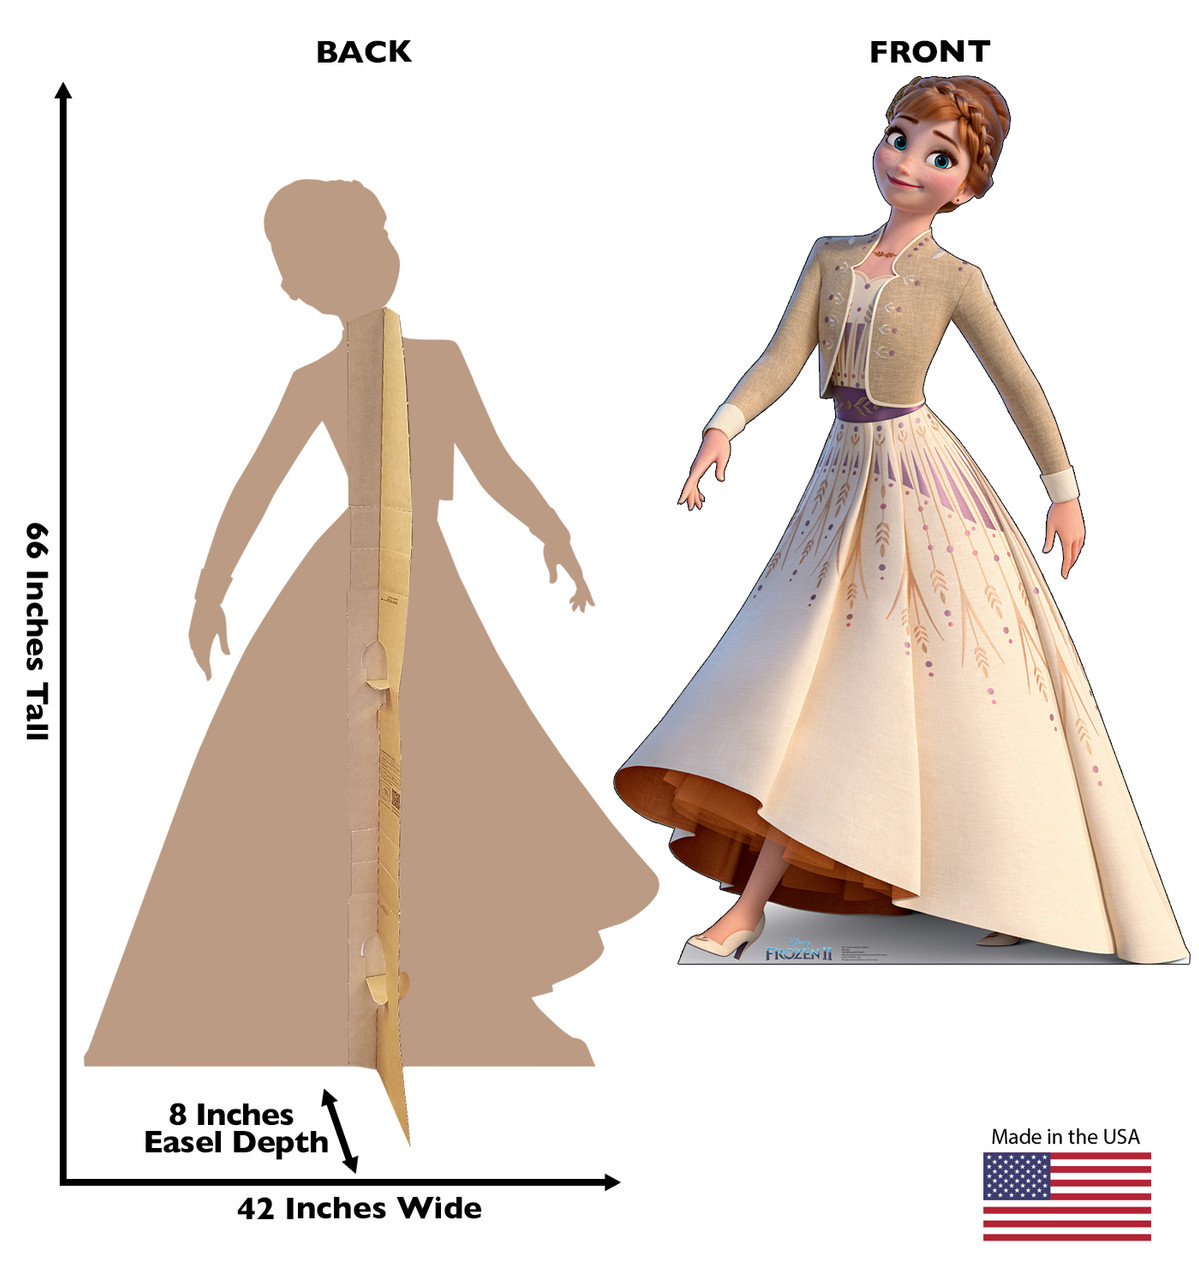 Life-size cardboard standee of Anna (Collector's Edition) from Disney's Frozen 2 with back and front dimensions.